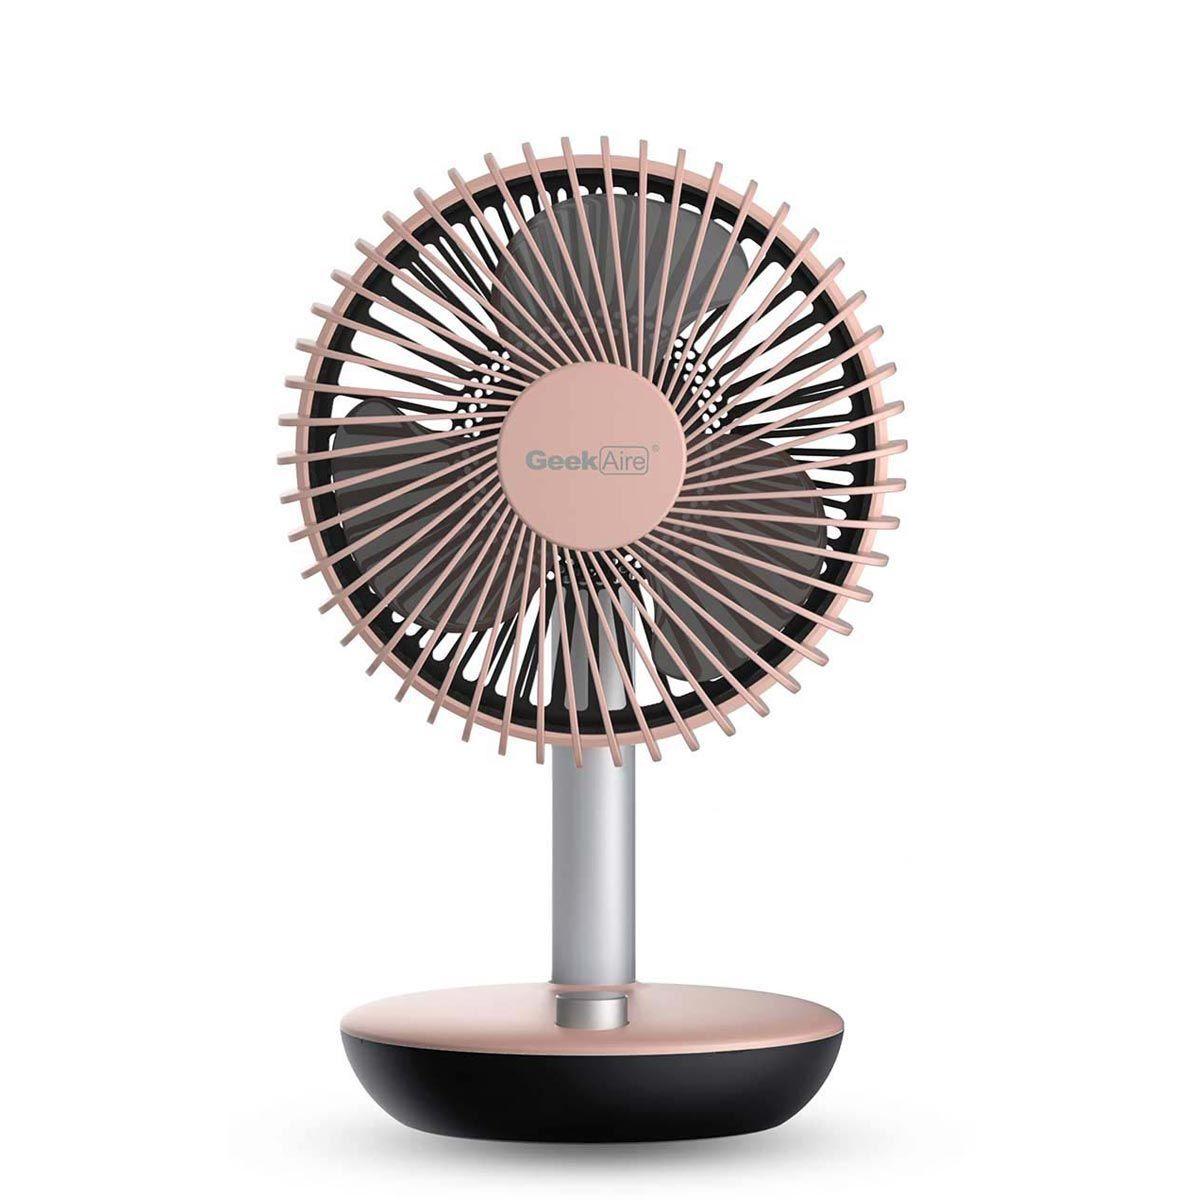 Geek Aire Rechargeable Mini Fan - 6 Inch Oscillating (Pink)